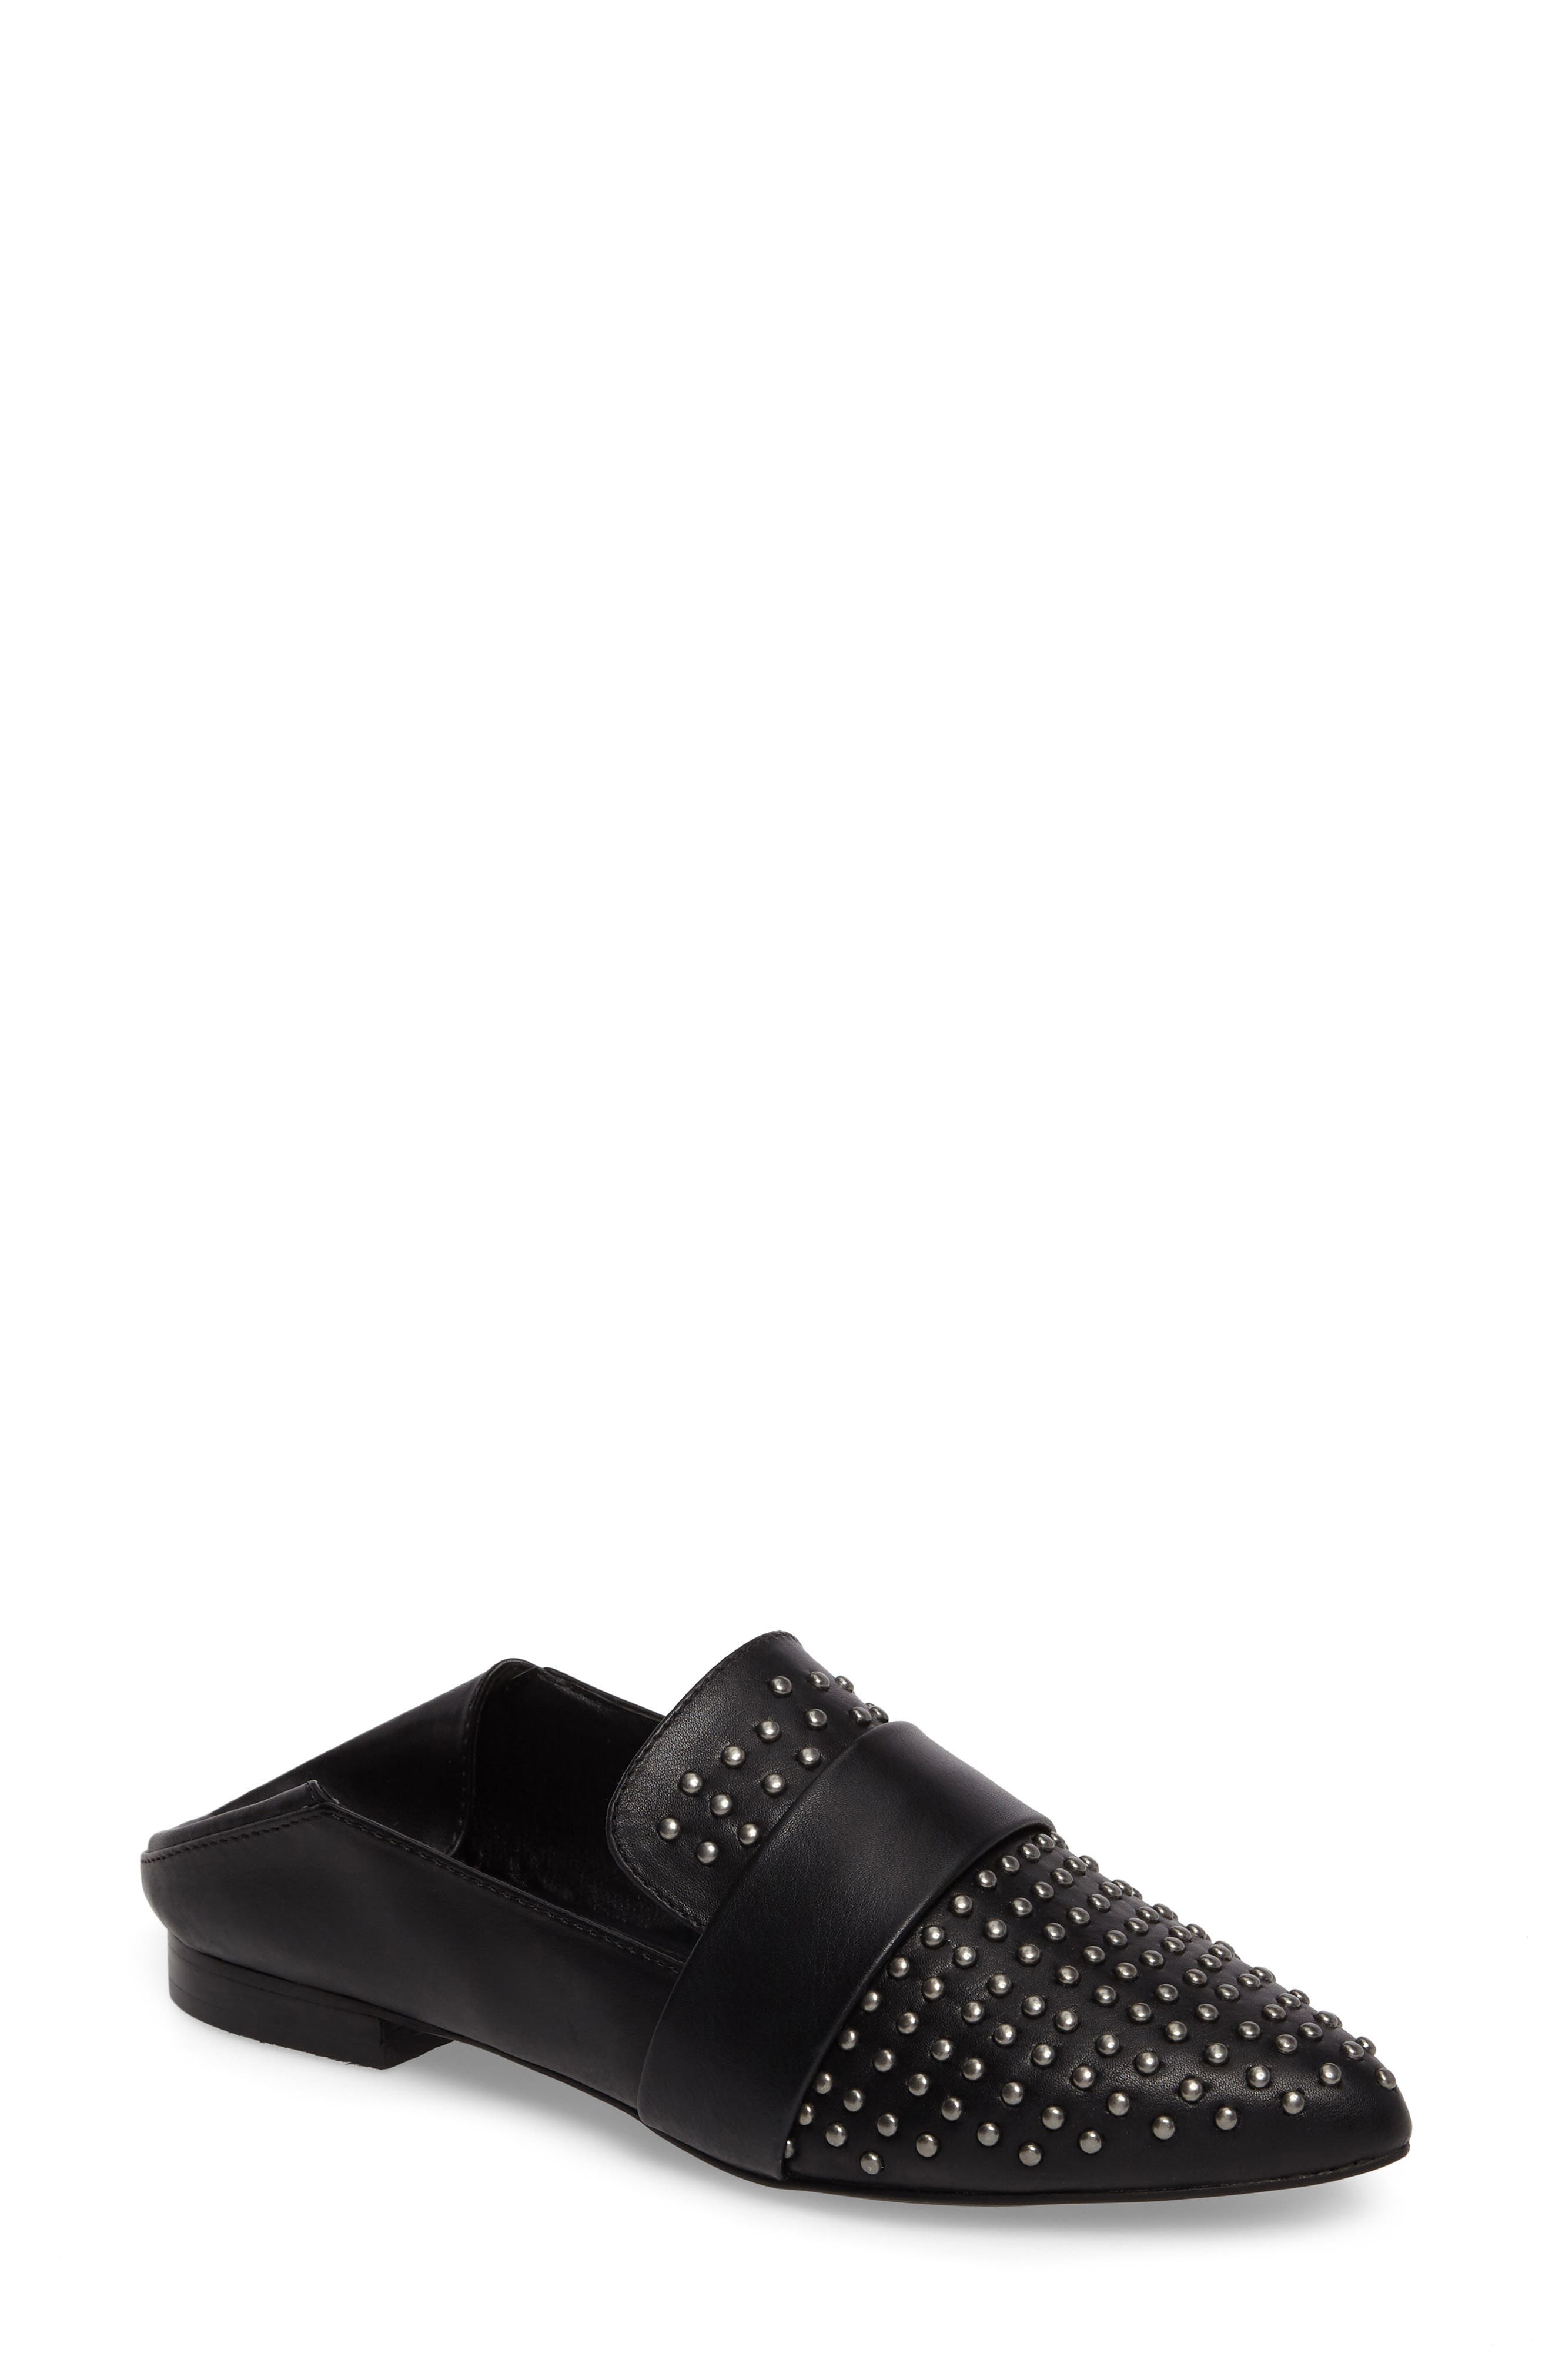 Felix Convertible Loafer,                         Main,                         color, Black